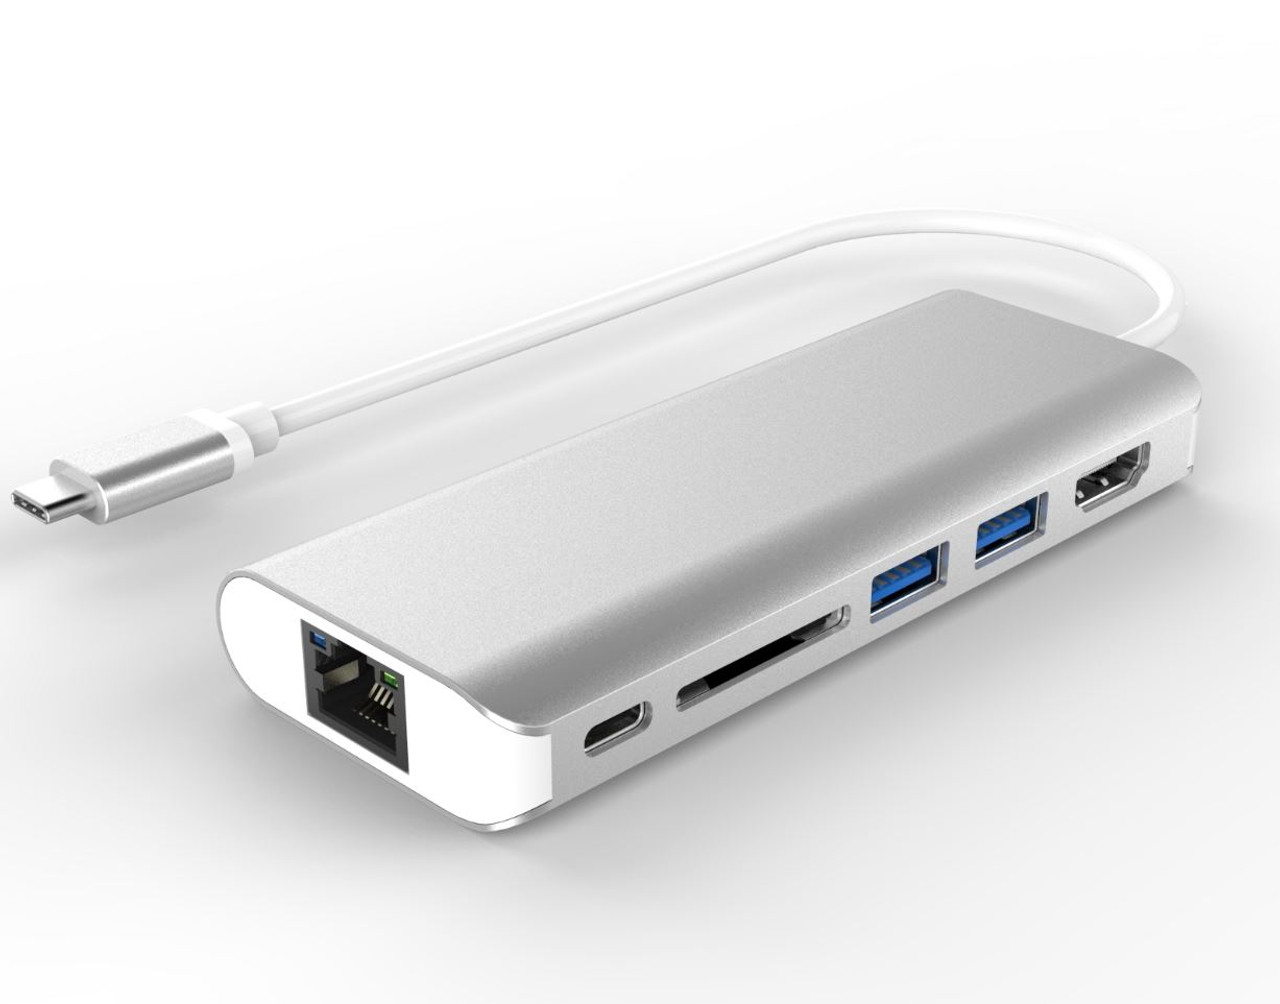 Product image for All-in-One Dock Thunderbolt USB-C 3.1 Type-C to HDMI+USB3.0+CardReader | CX Computer Superstore